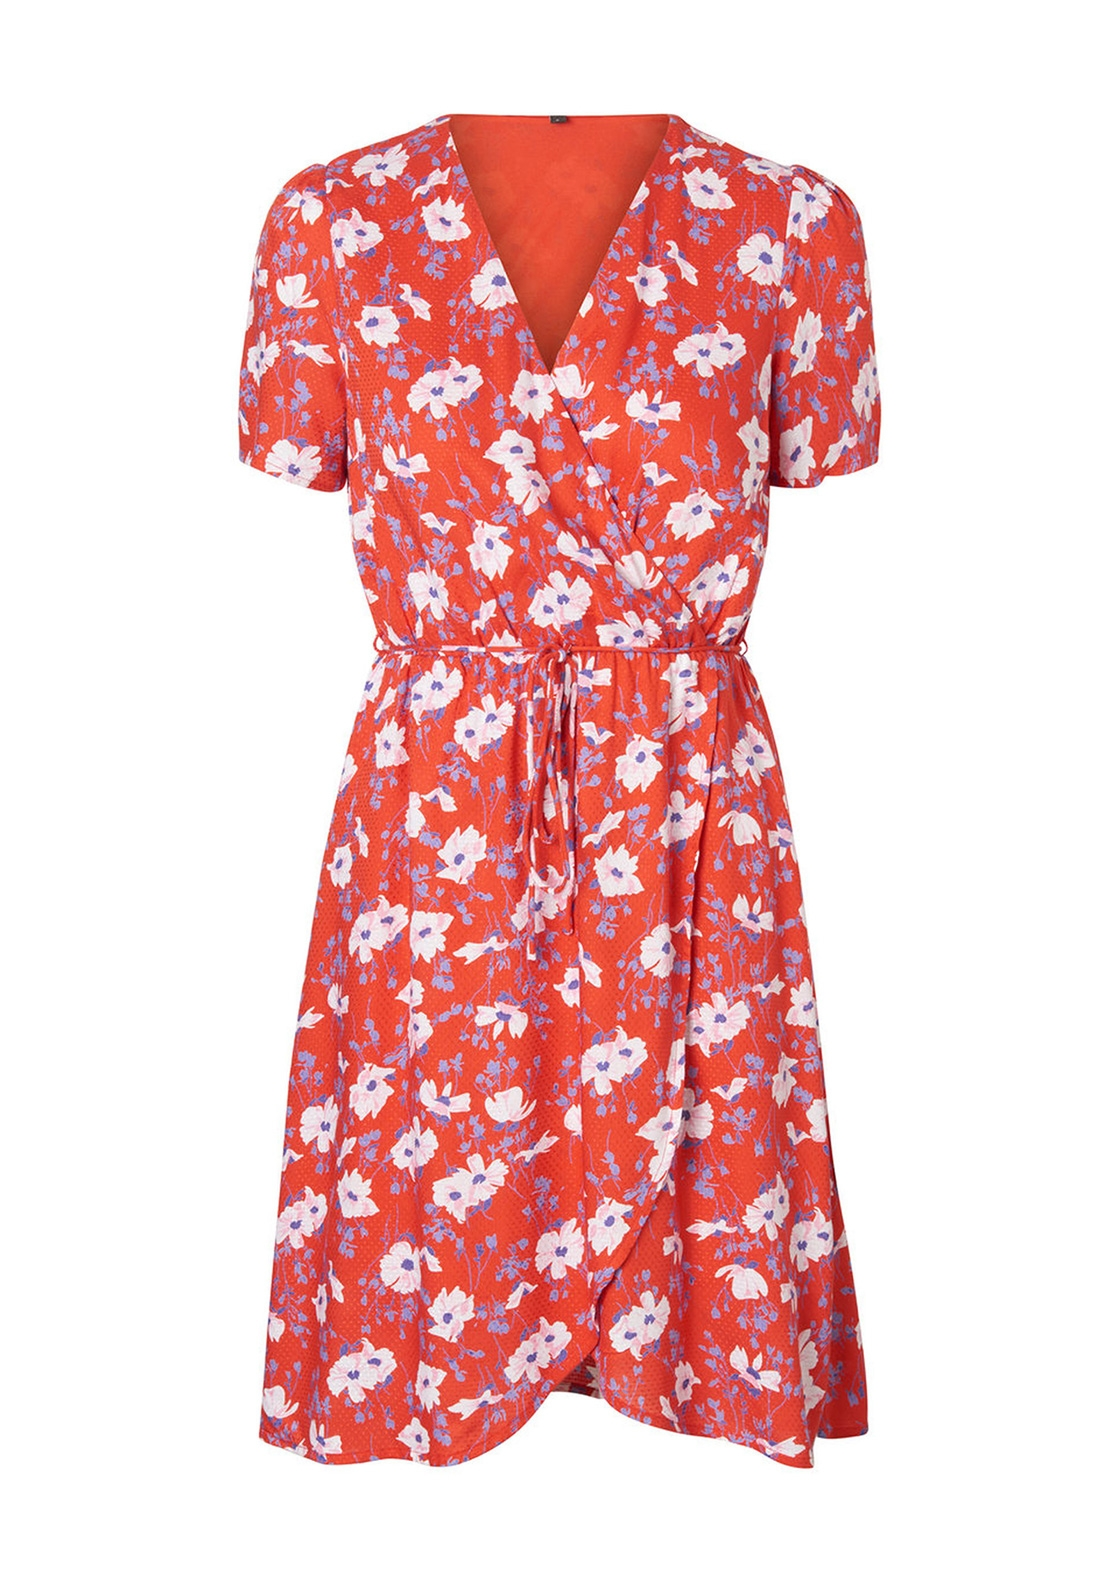 Vero Moda Polly Floral Midi Dress, Red